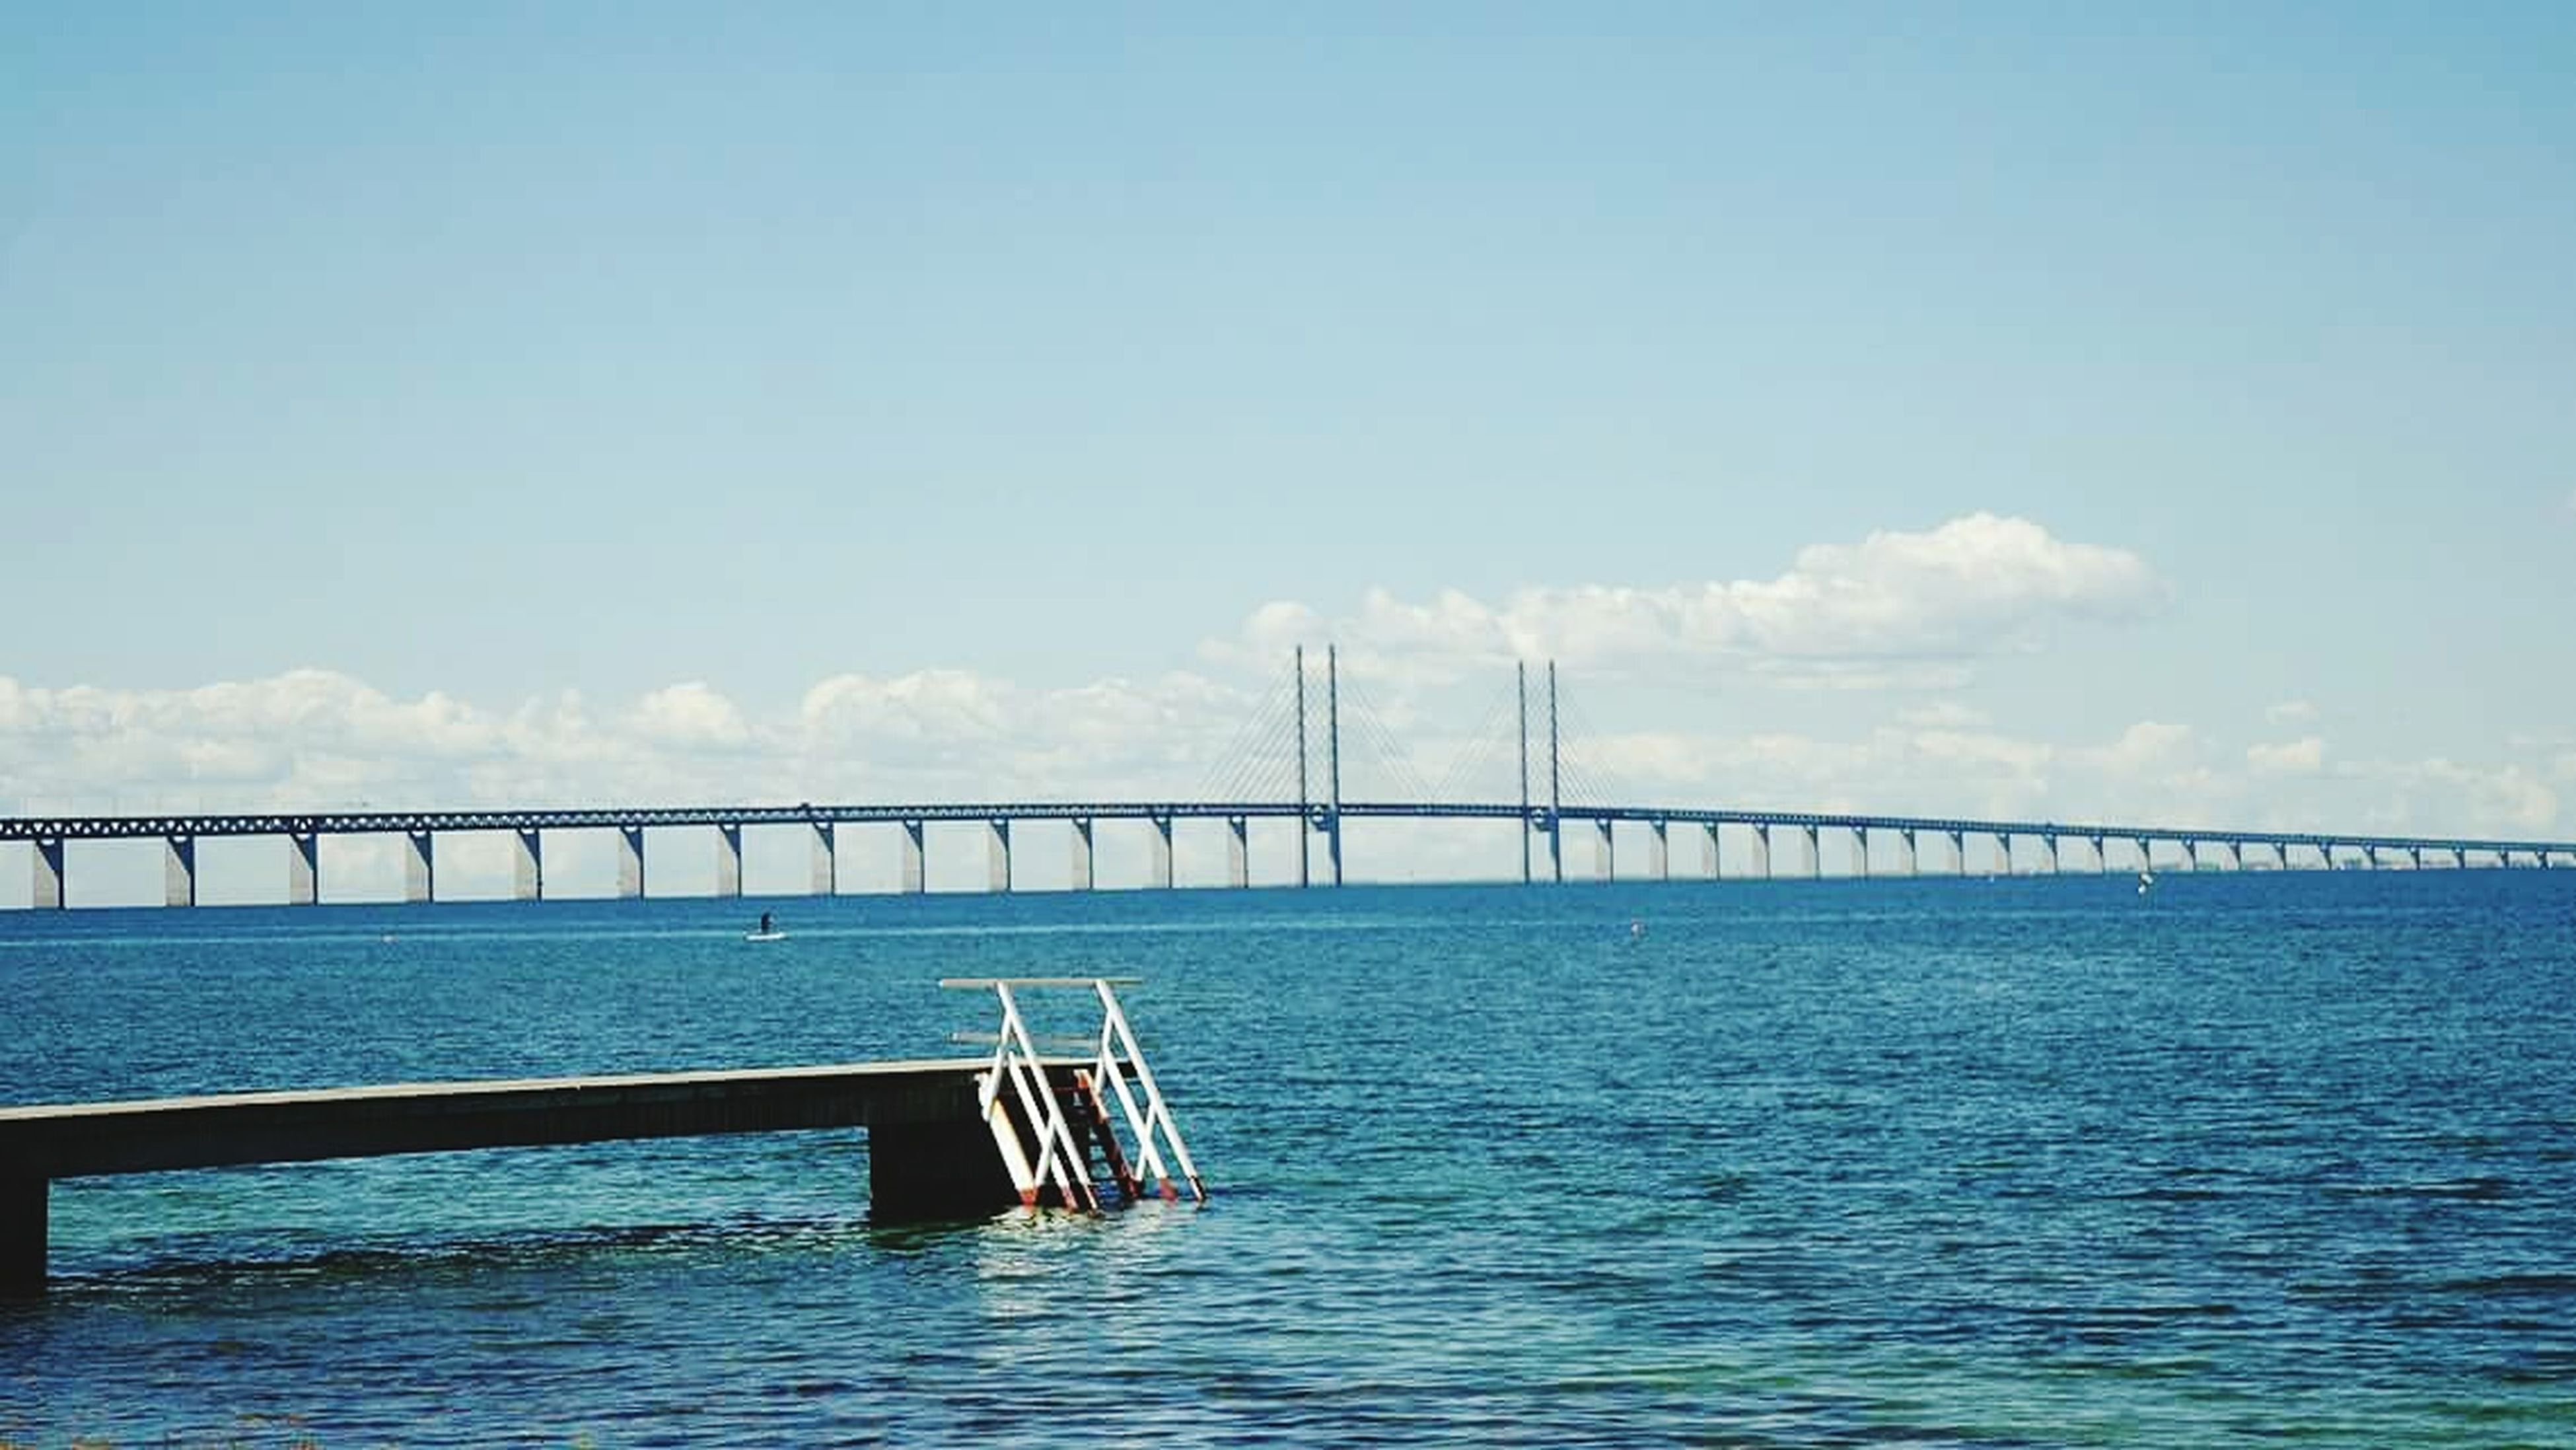 connection, water, bridge - man made structure, sky, sea, bridge, built structure, waterfront, transportation, architecture, rippled, engineering, river, tranquil scene, tranquility, blue, long, nature, cloud, suspension bridge